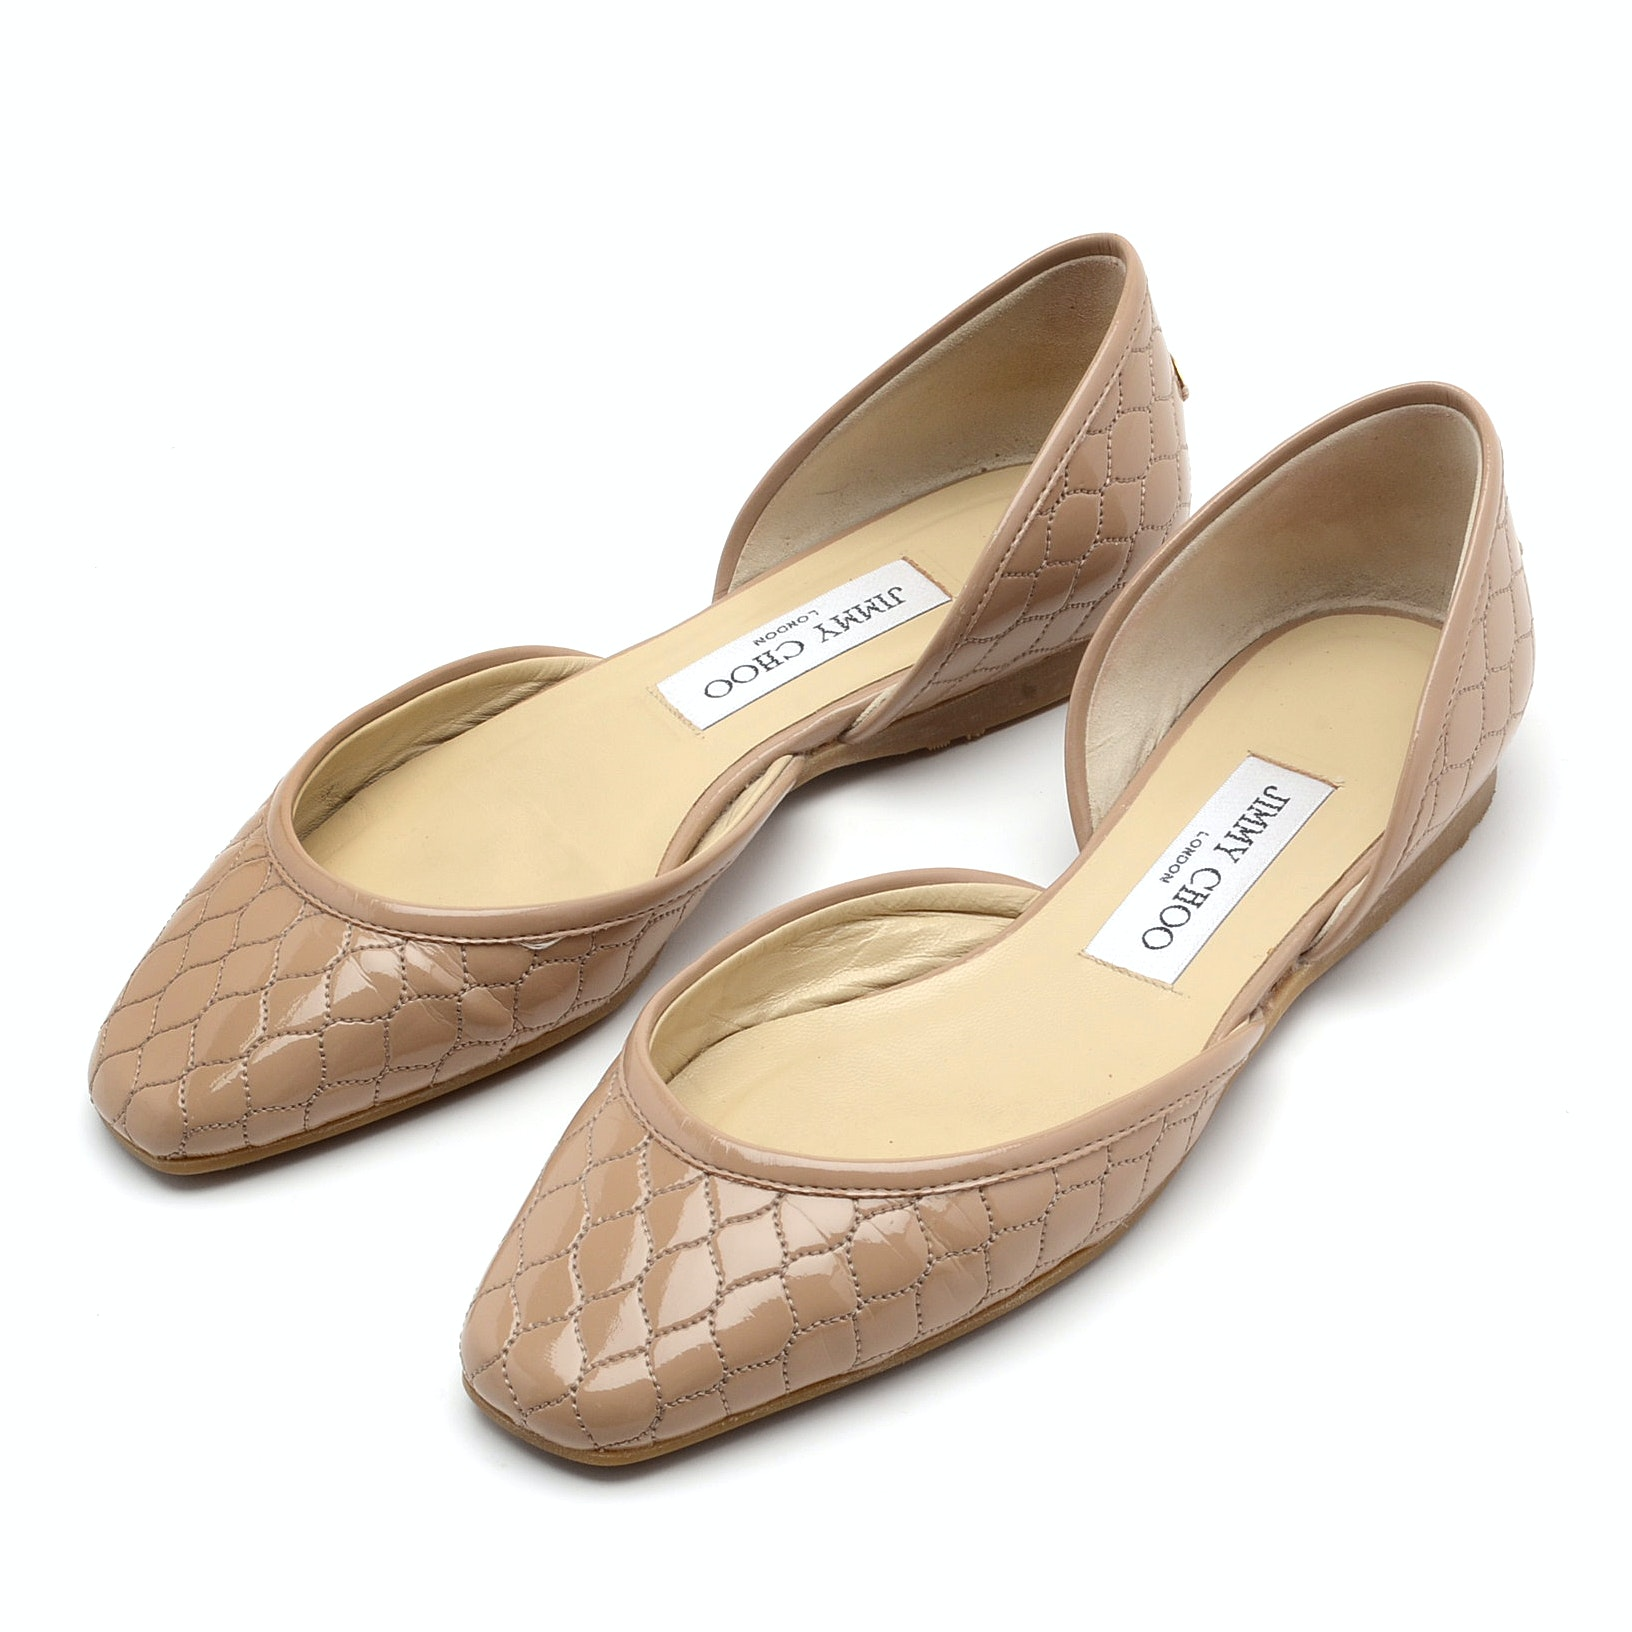 "Jimmy Choo London Quilted Patent Leather ""d'Orsay"" Ballet Flats in Nude"